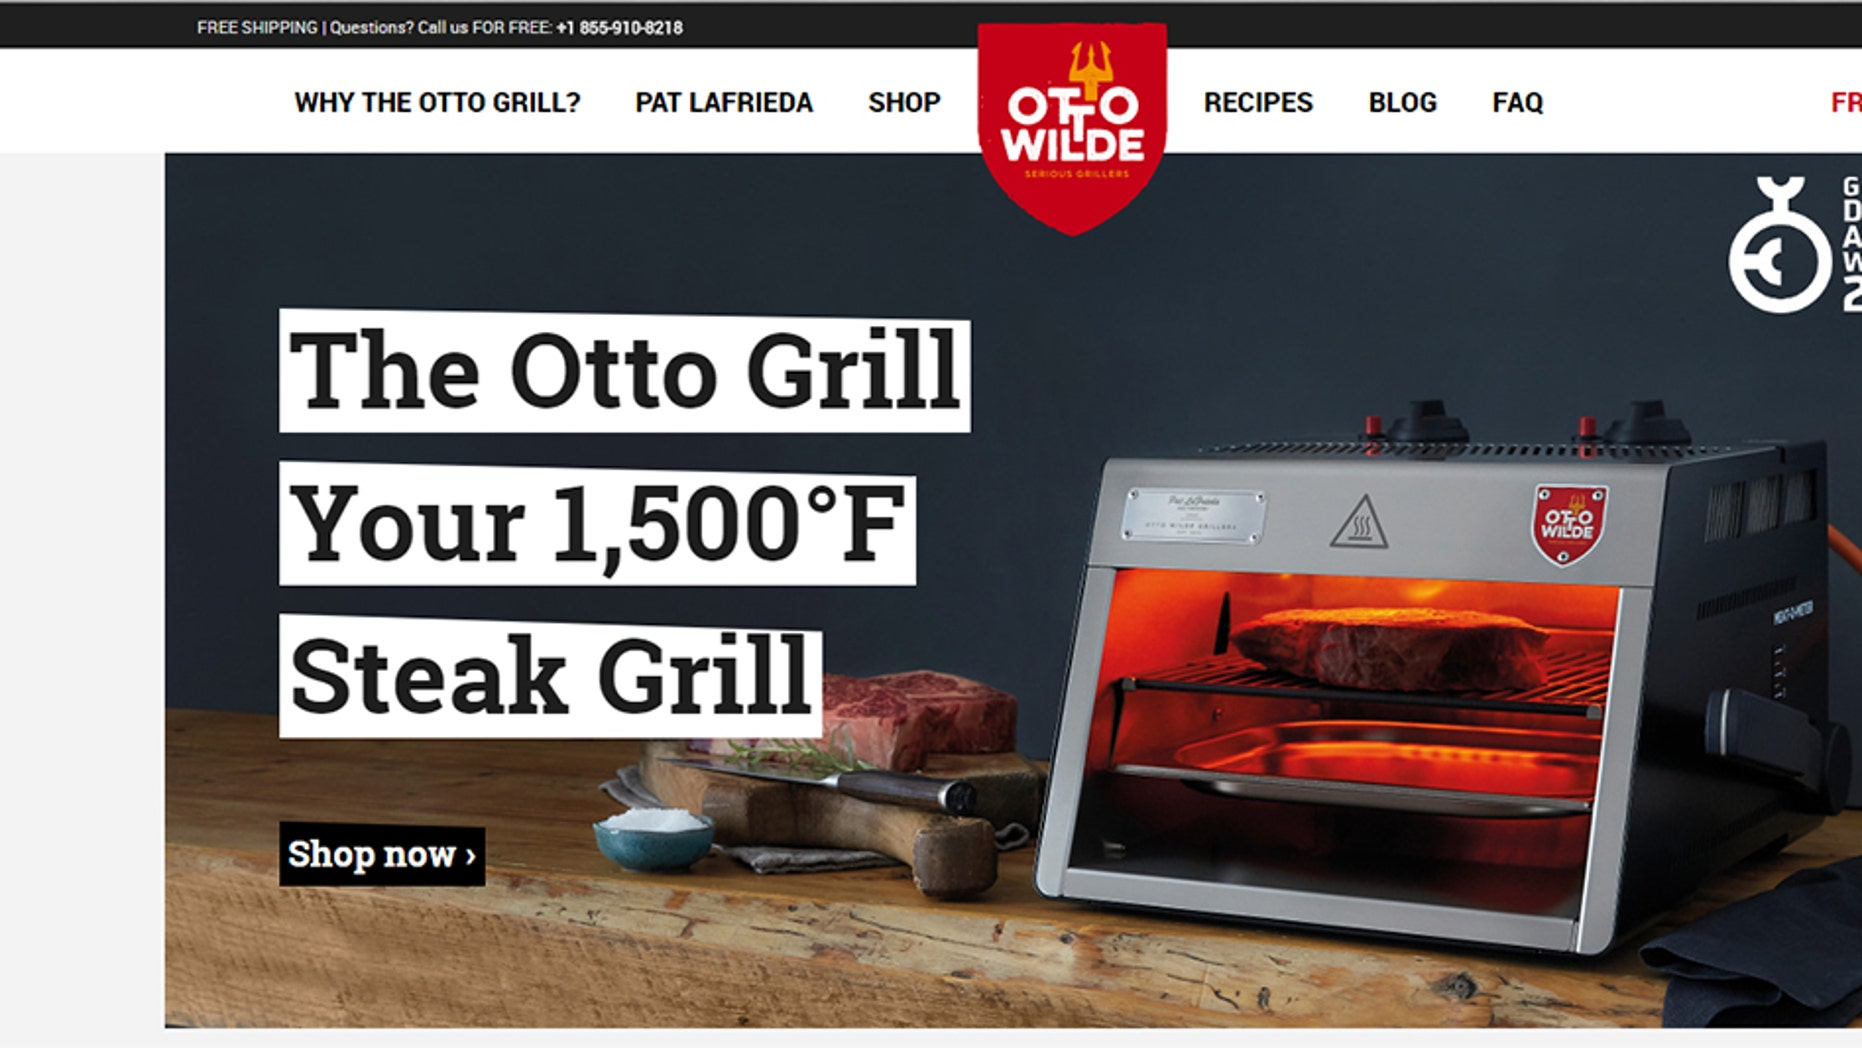 Pat LaFrieda has teamed up with a German company called Otto Wild Grillers for his Pat LaFrieda Signature Series model.